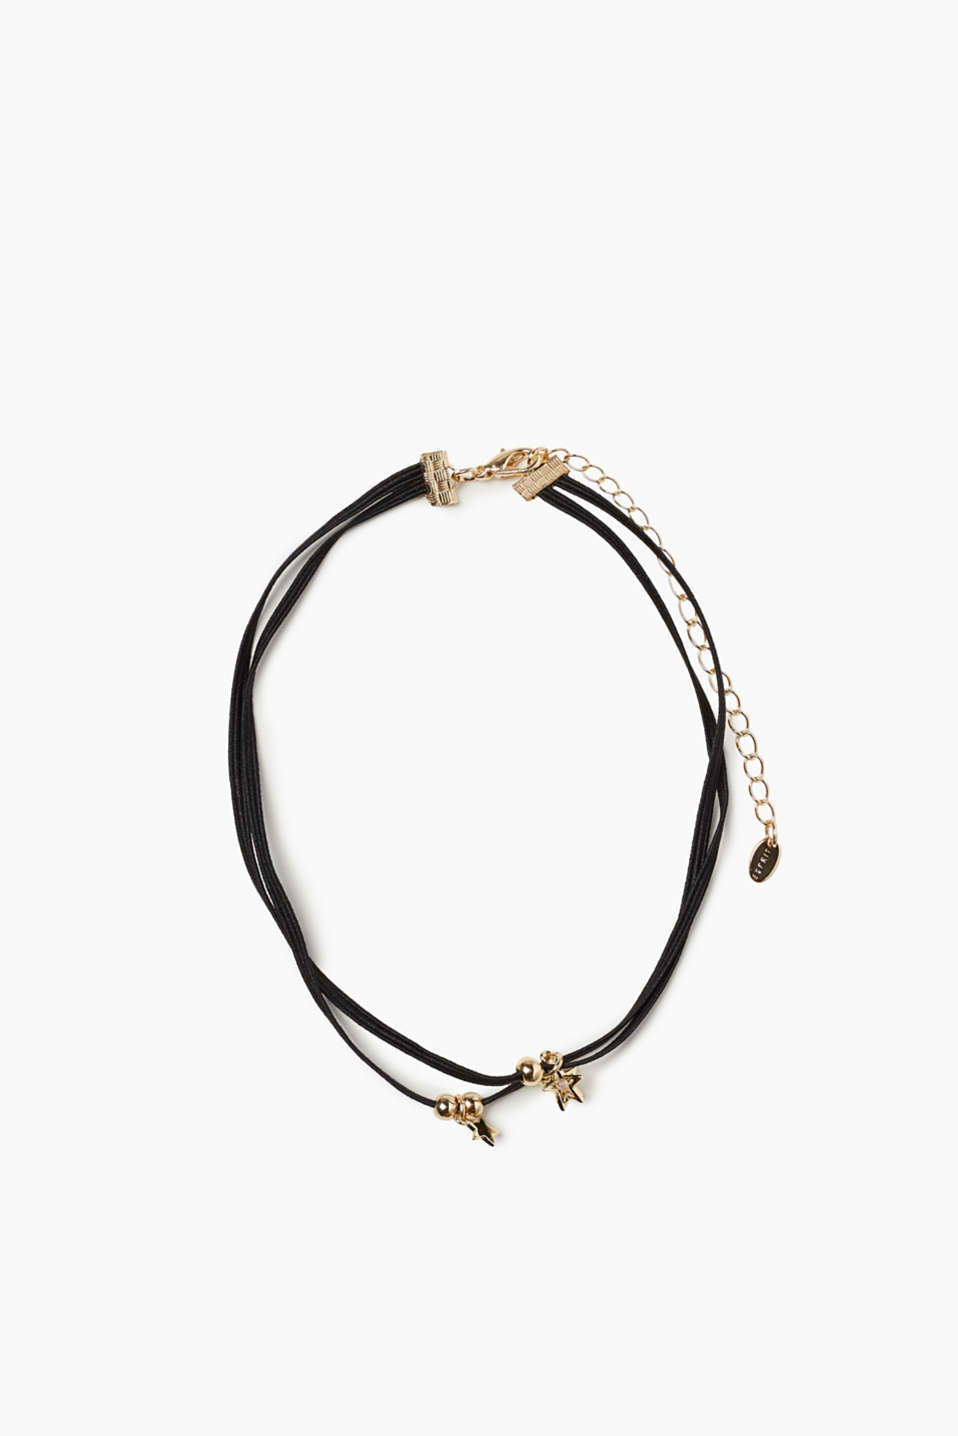 Esprit - Elasticated choker with metal details